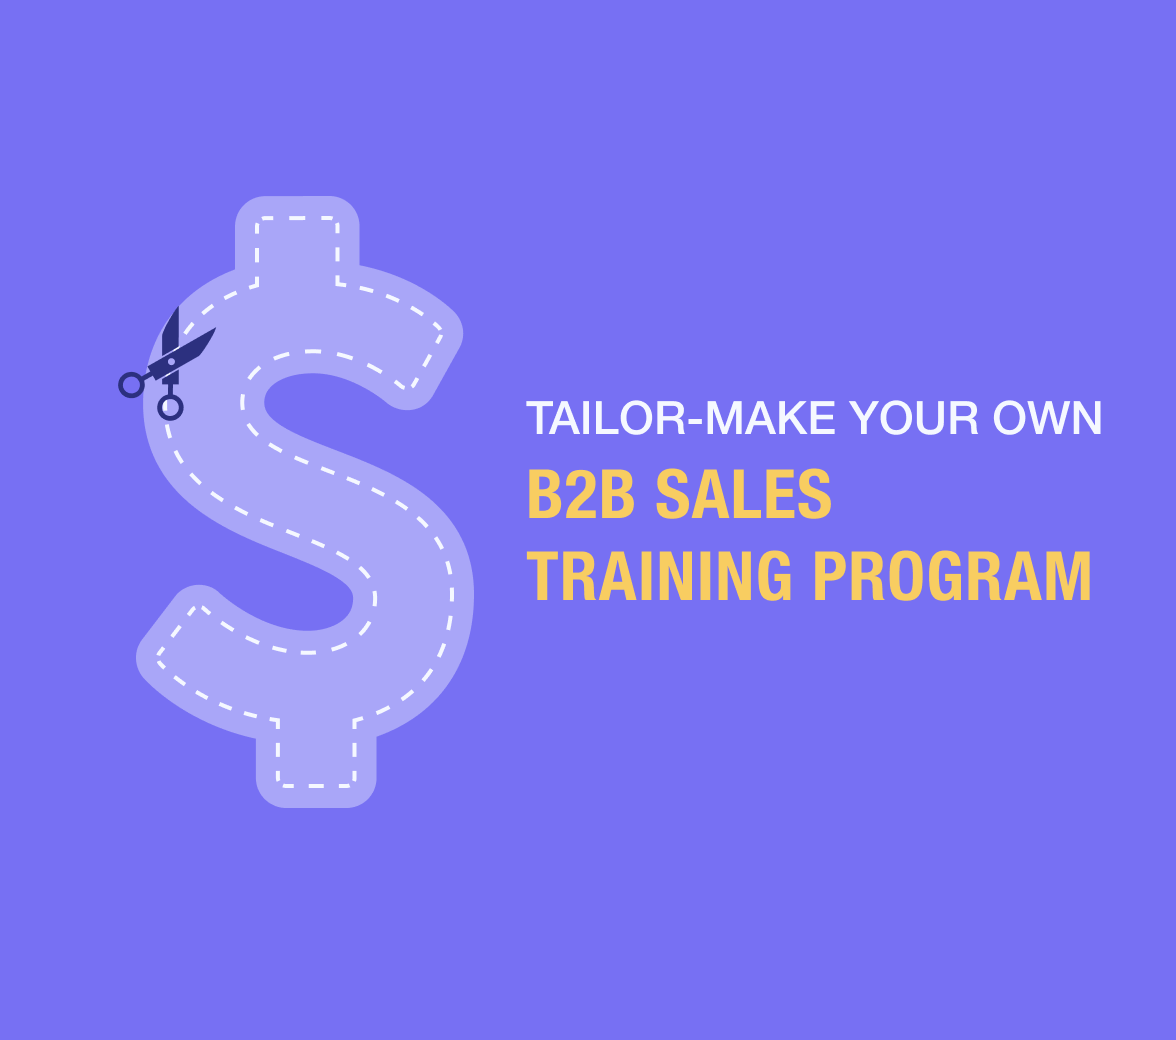 Guide to a B2B sales training program all companies should design